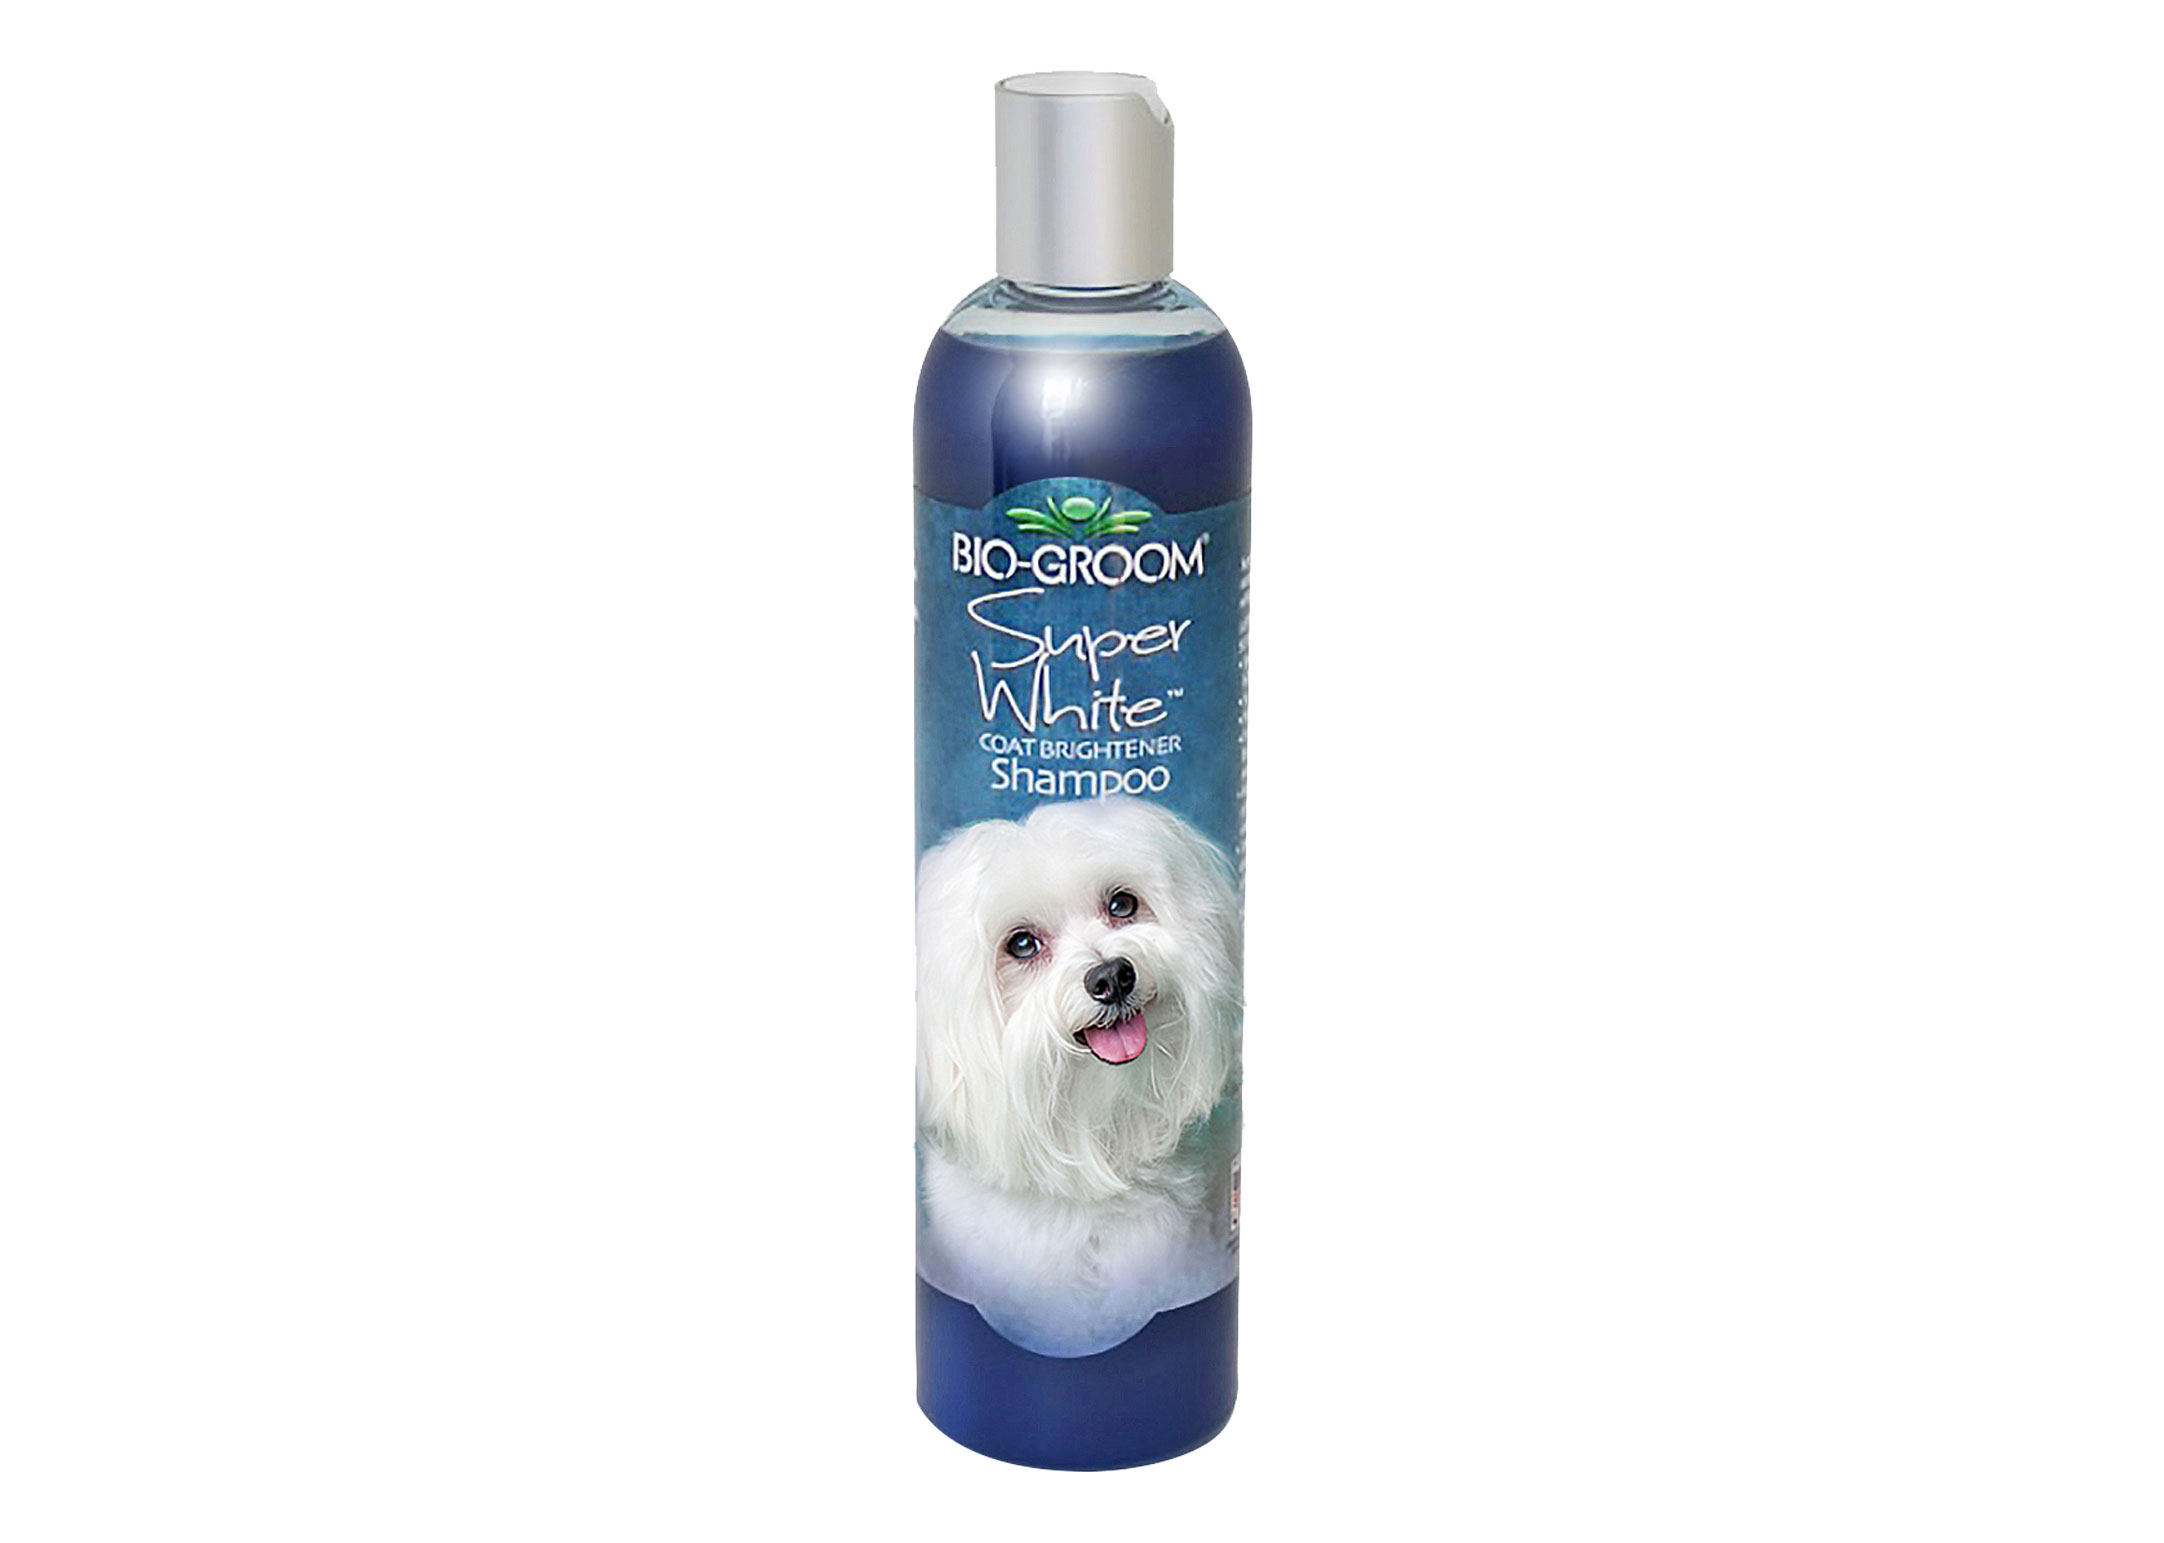 Bio Groom Super White Shampoo For Dogs, Cats And Horses